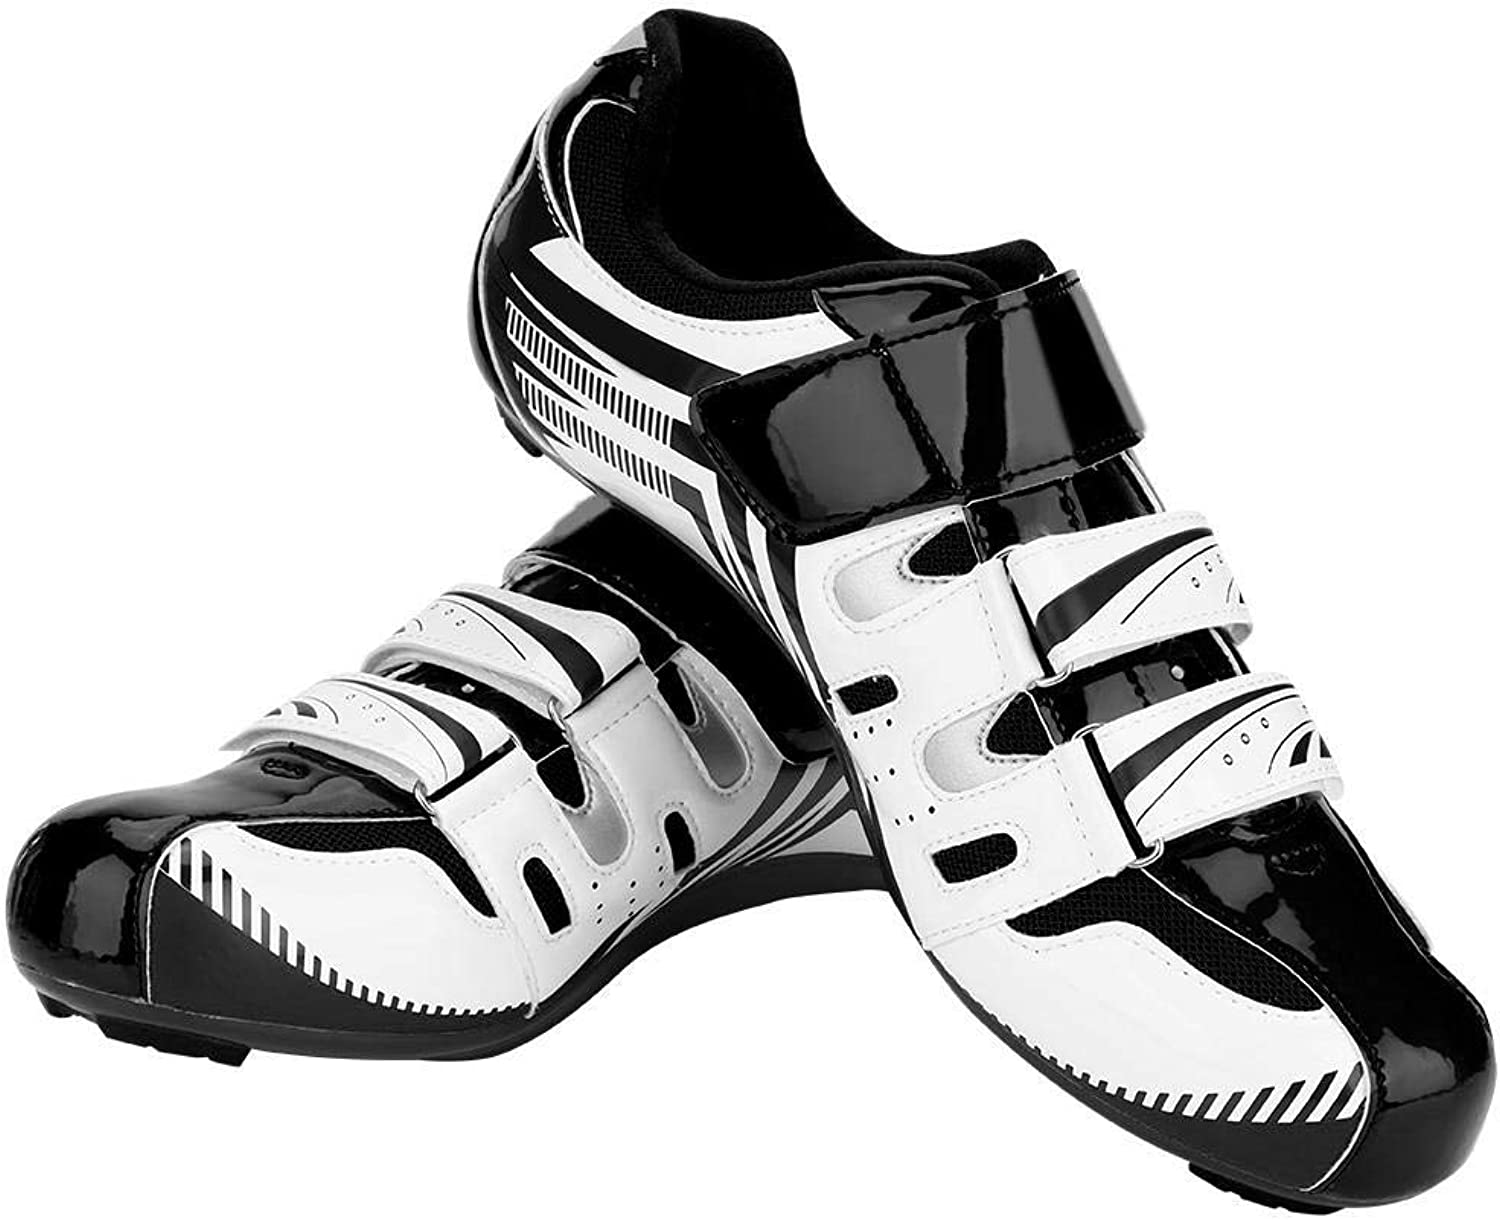 Dioche Mountain Bike shoes, Road Bike Anti-Skid SPD System Lock Riding Cycling shoes Men Adult (1 Pair)